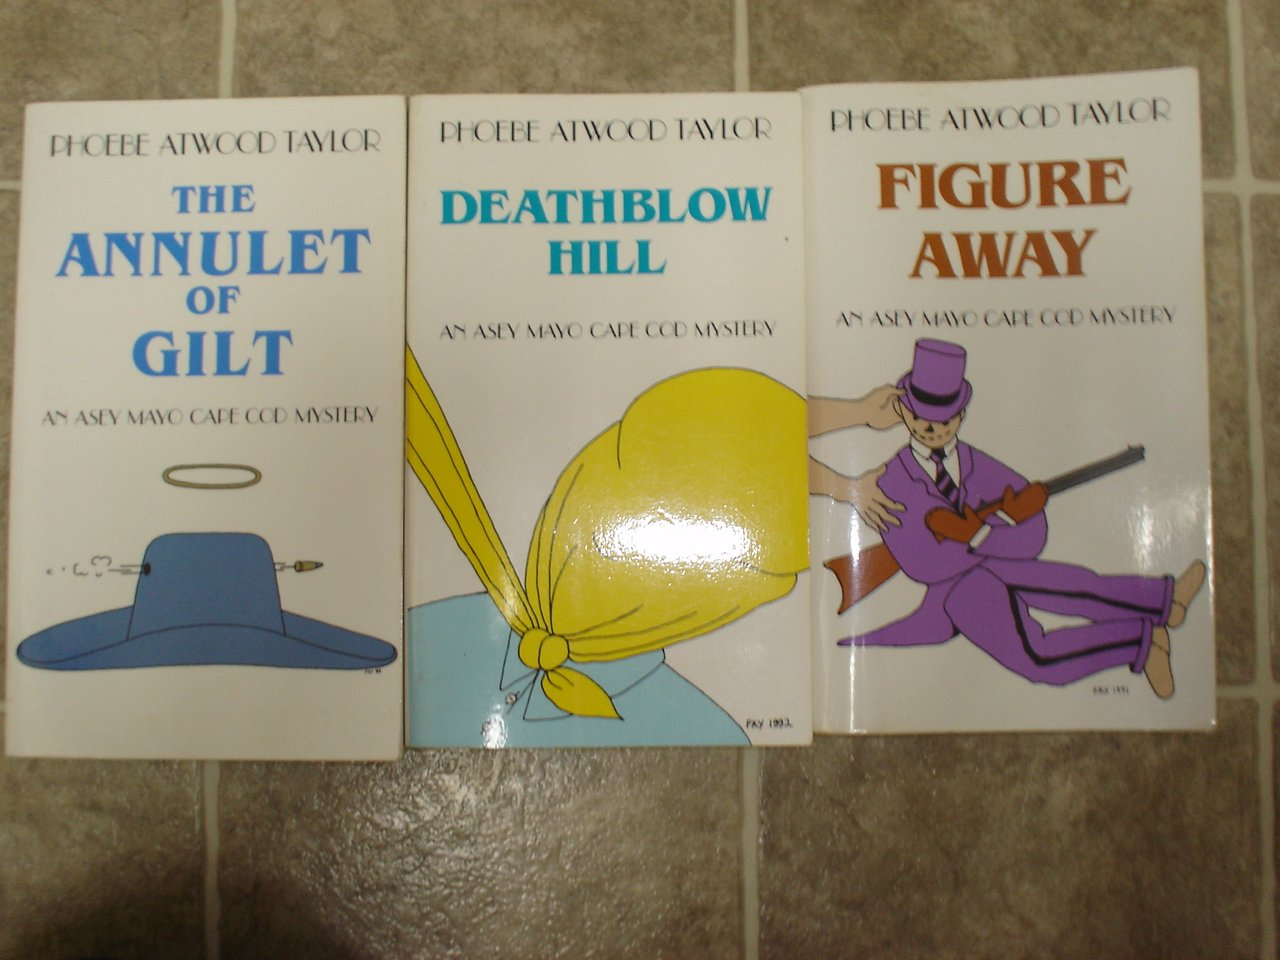 Phoebe Atwood Taylor lot of 3 pb cozy mystery books Cape Cod Asey Mayo